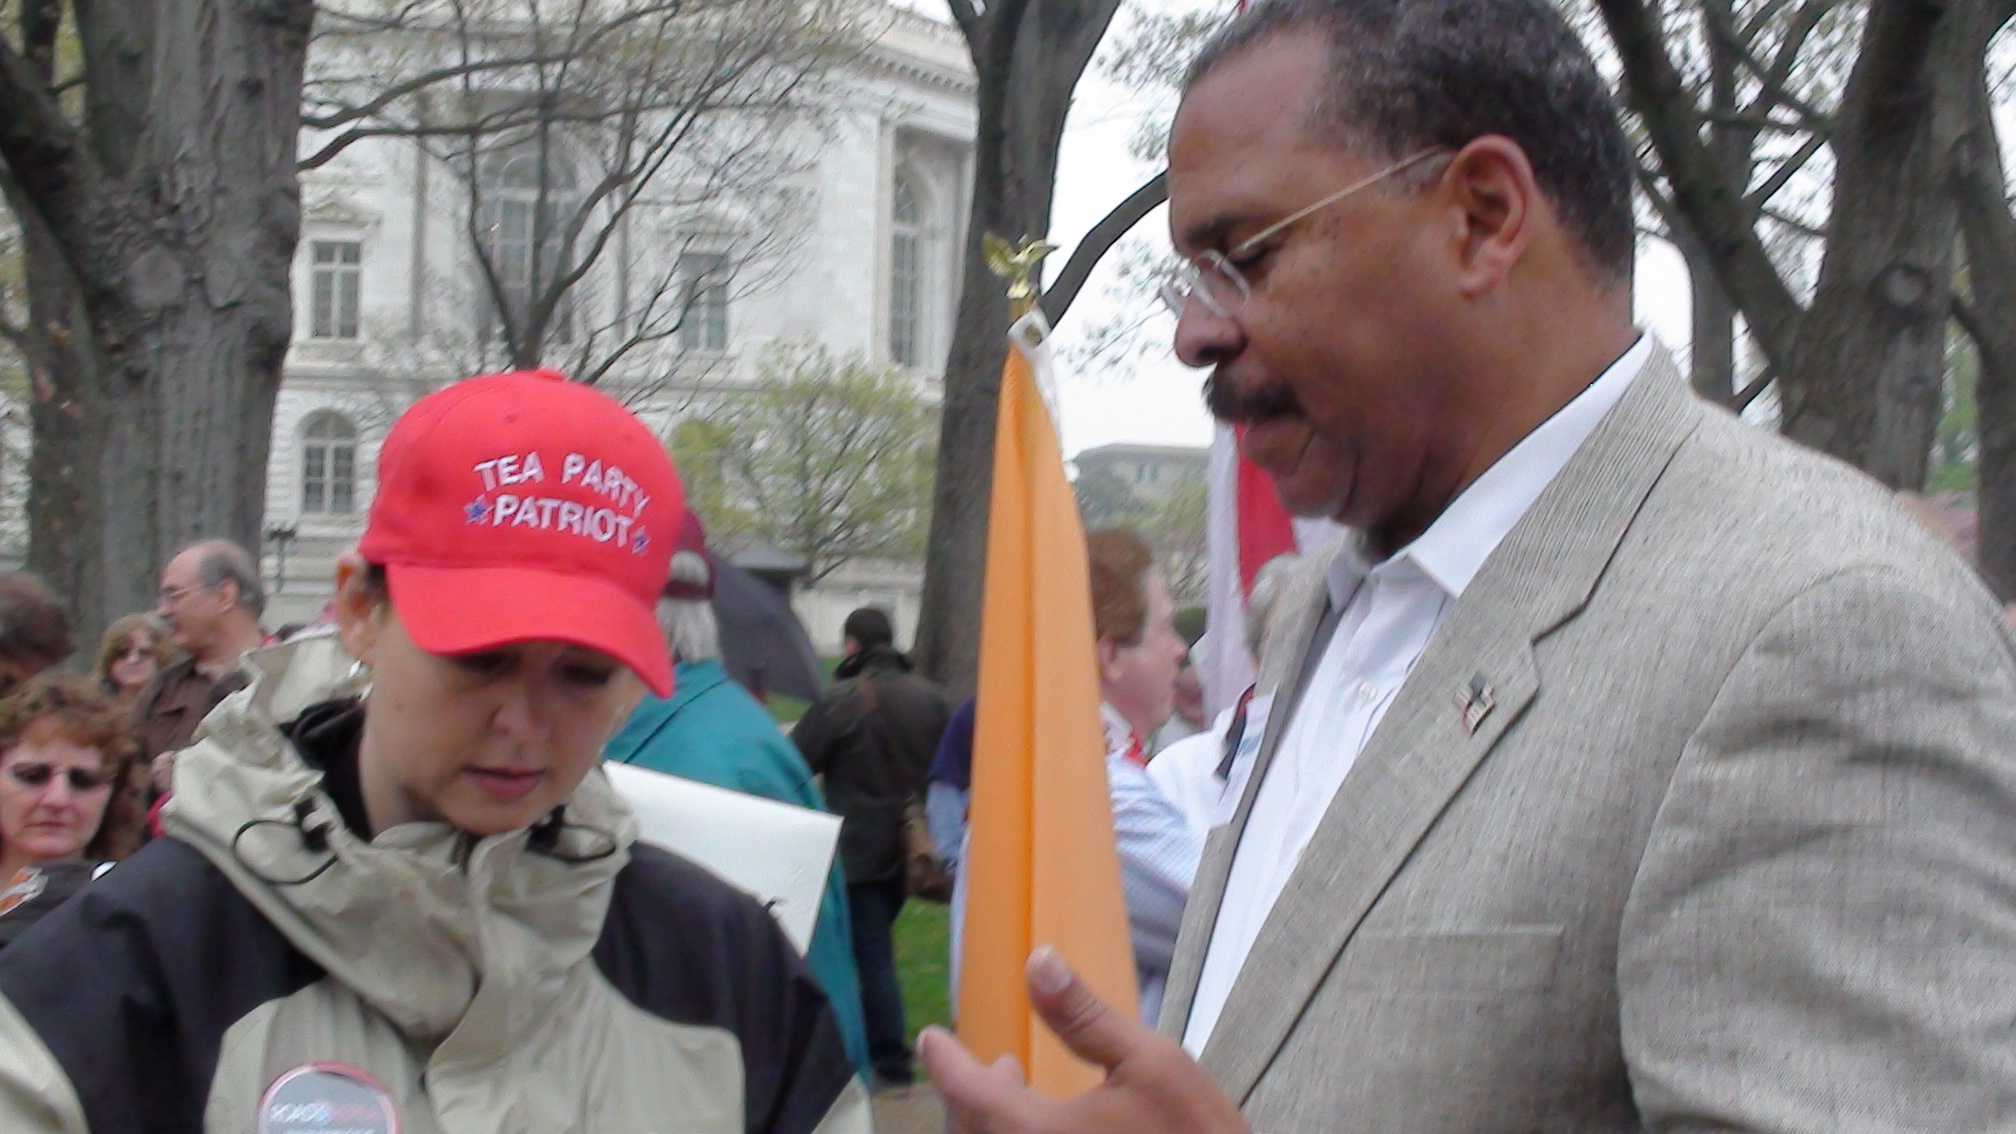 Road to Repeal, Jenny Beth Martin & Ken Blackwell